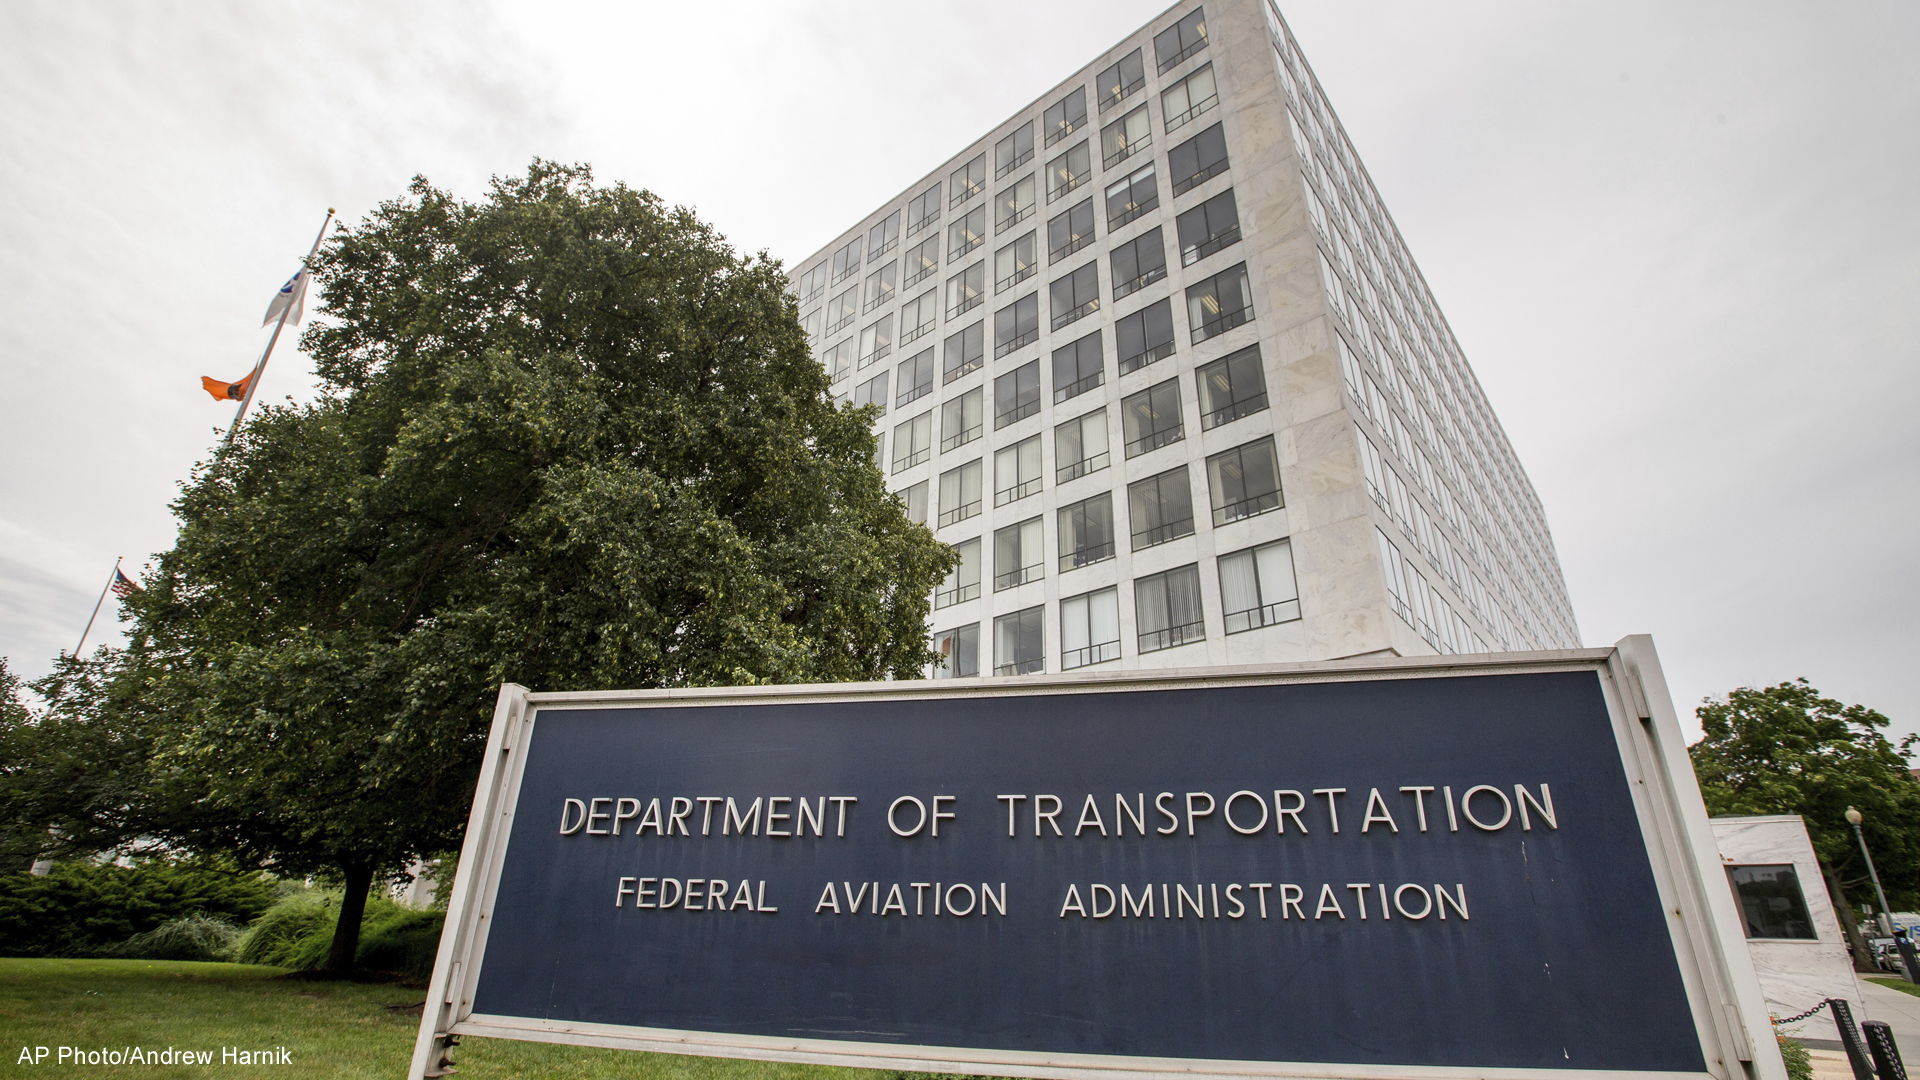 federal aviation administration building